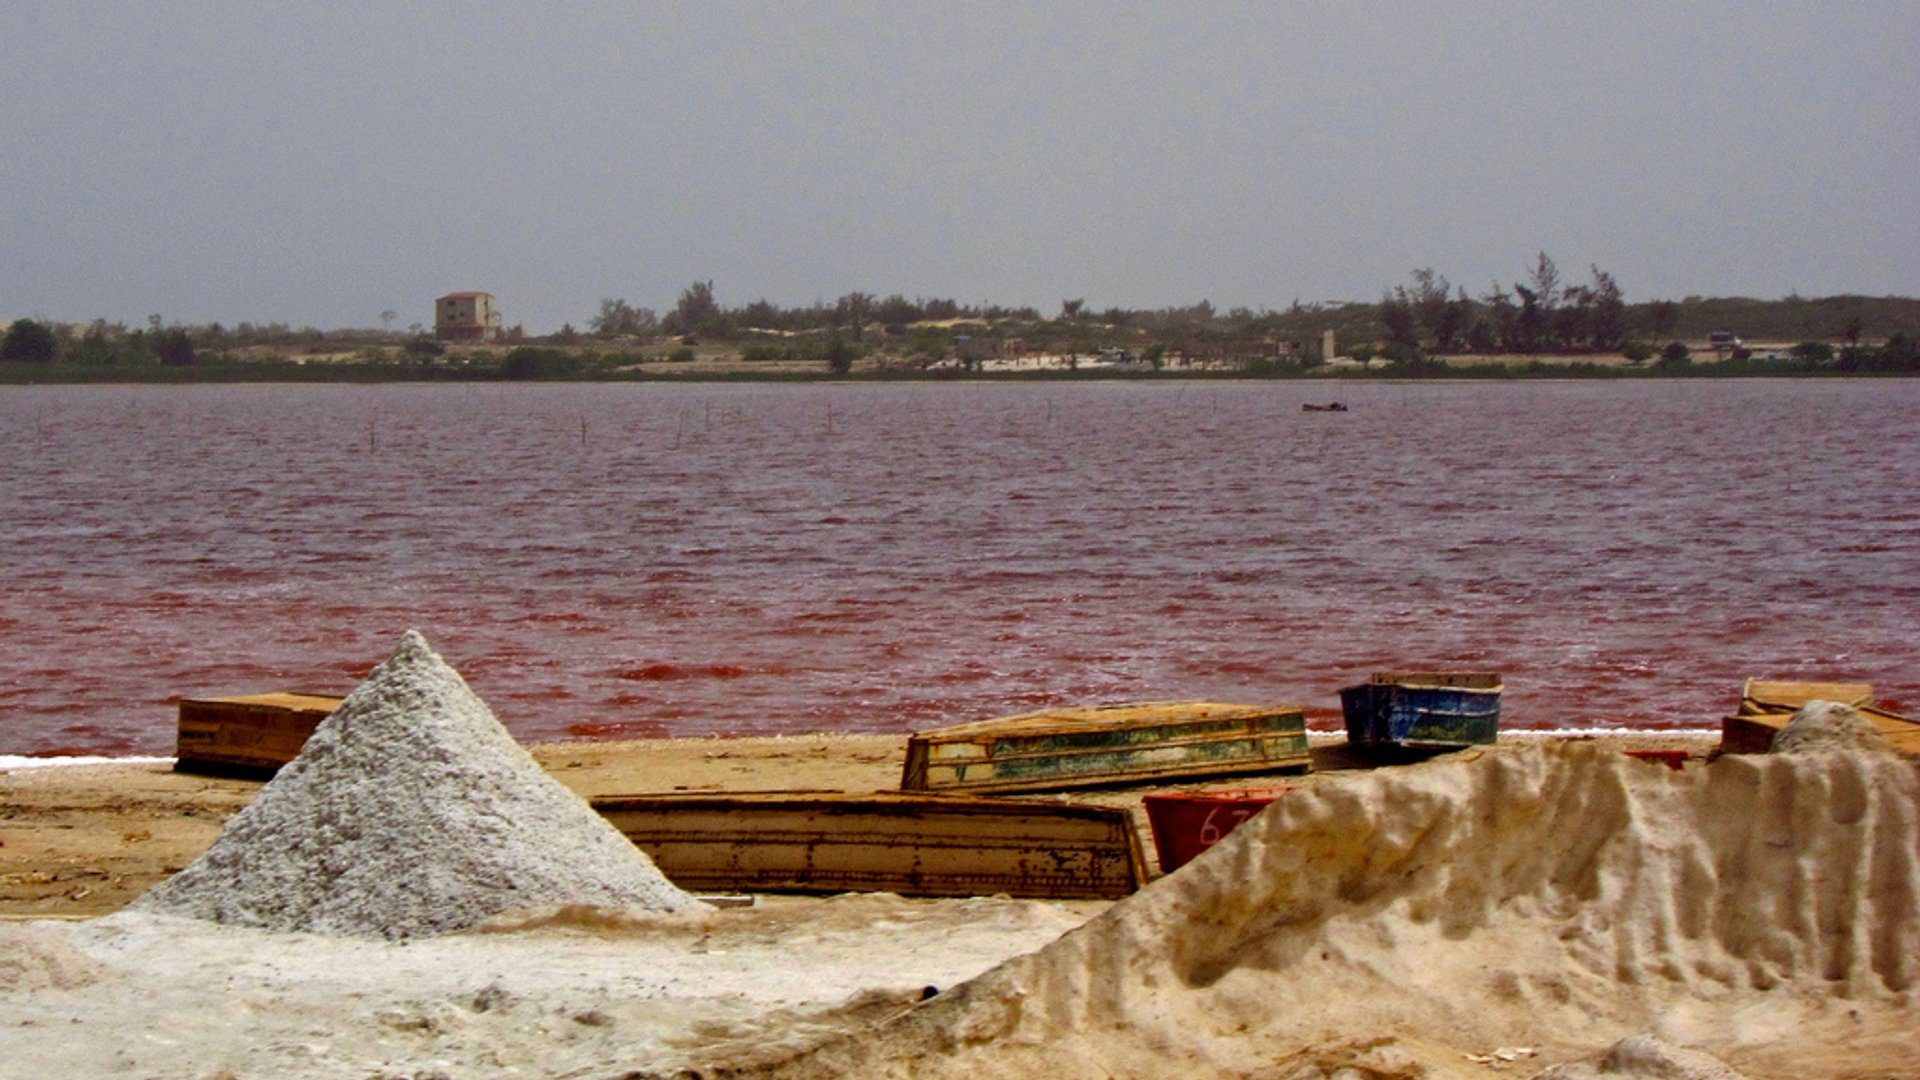 Pink Lake Retba in Senegal - Best Season 2020